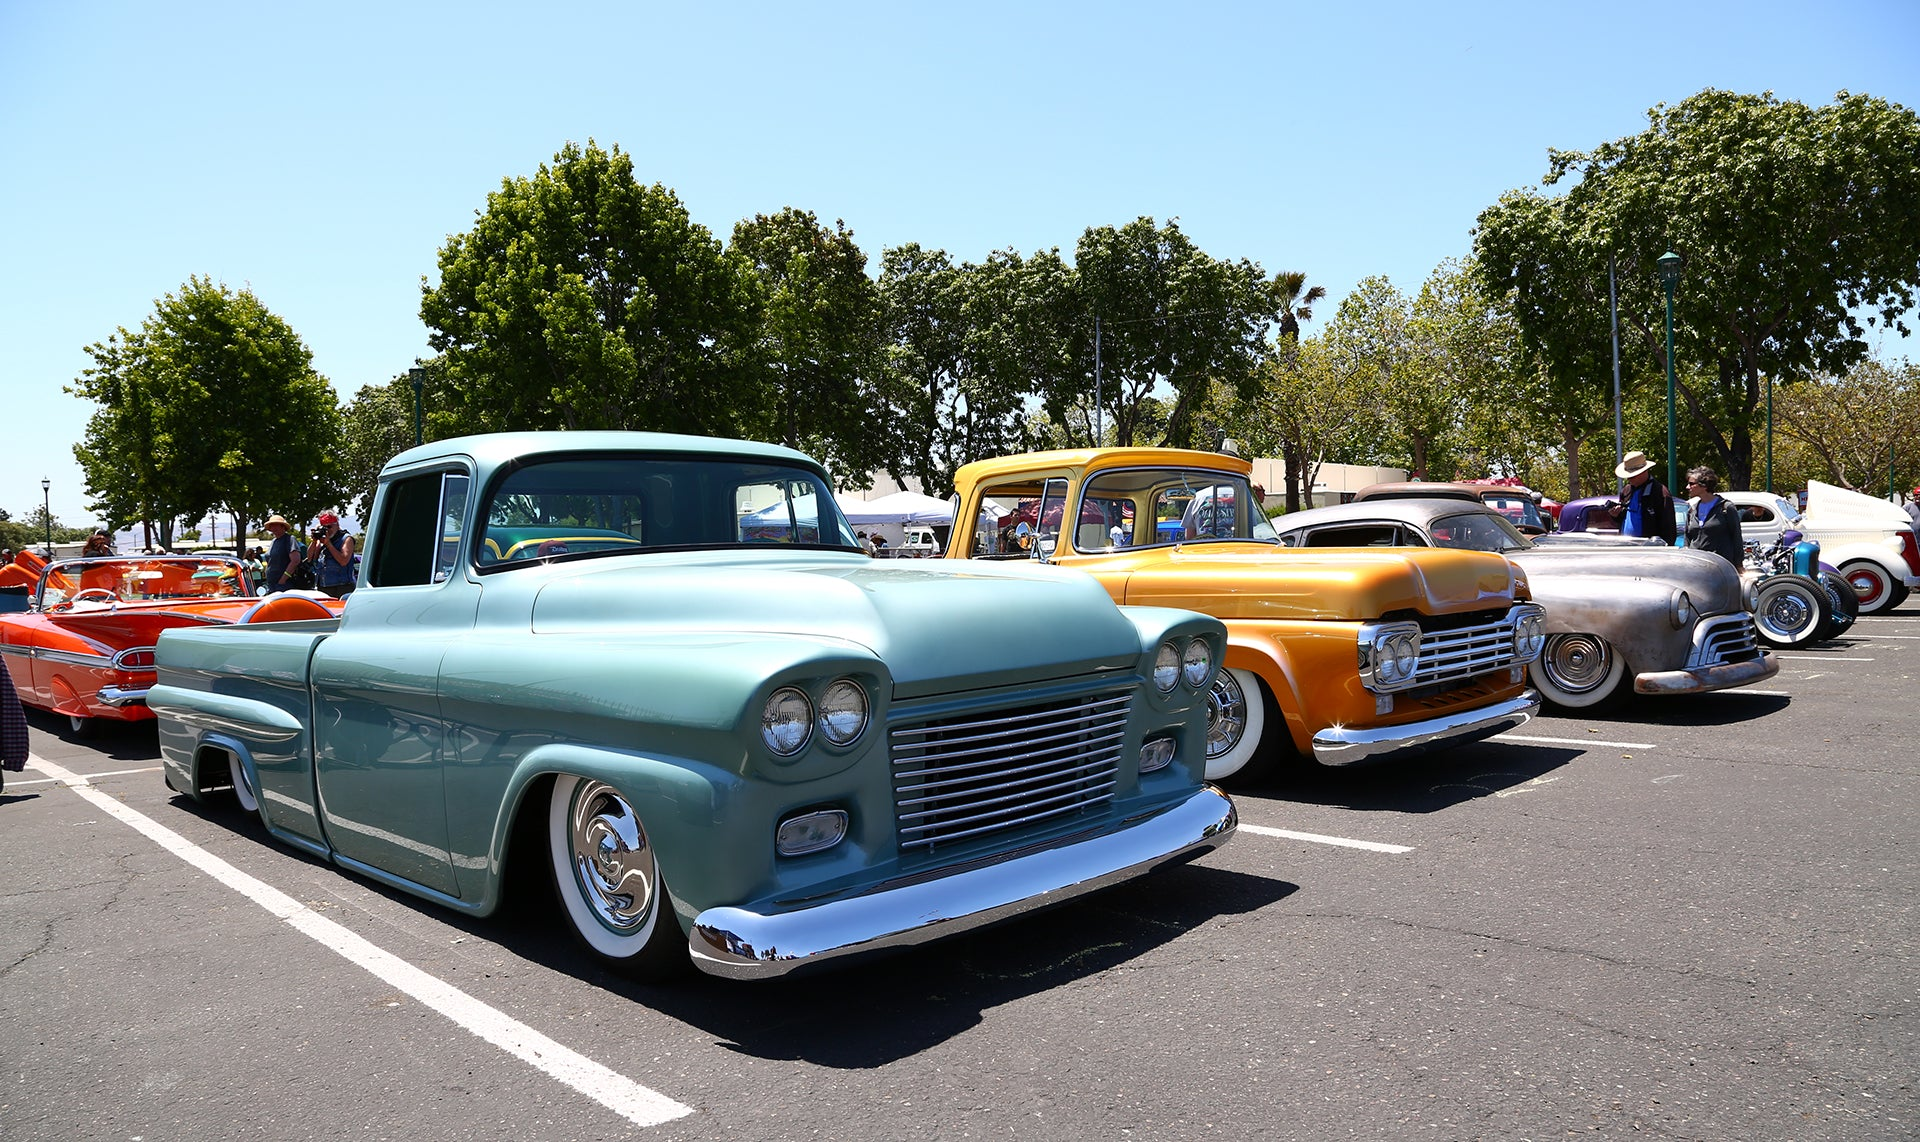 Cool pair of blue and yellow trucks